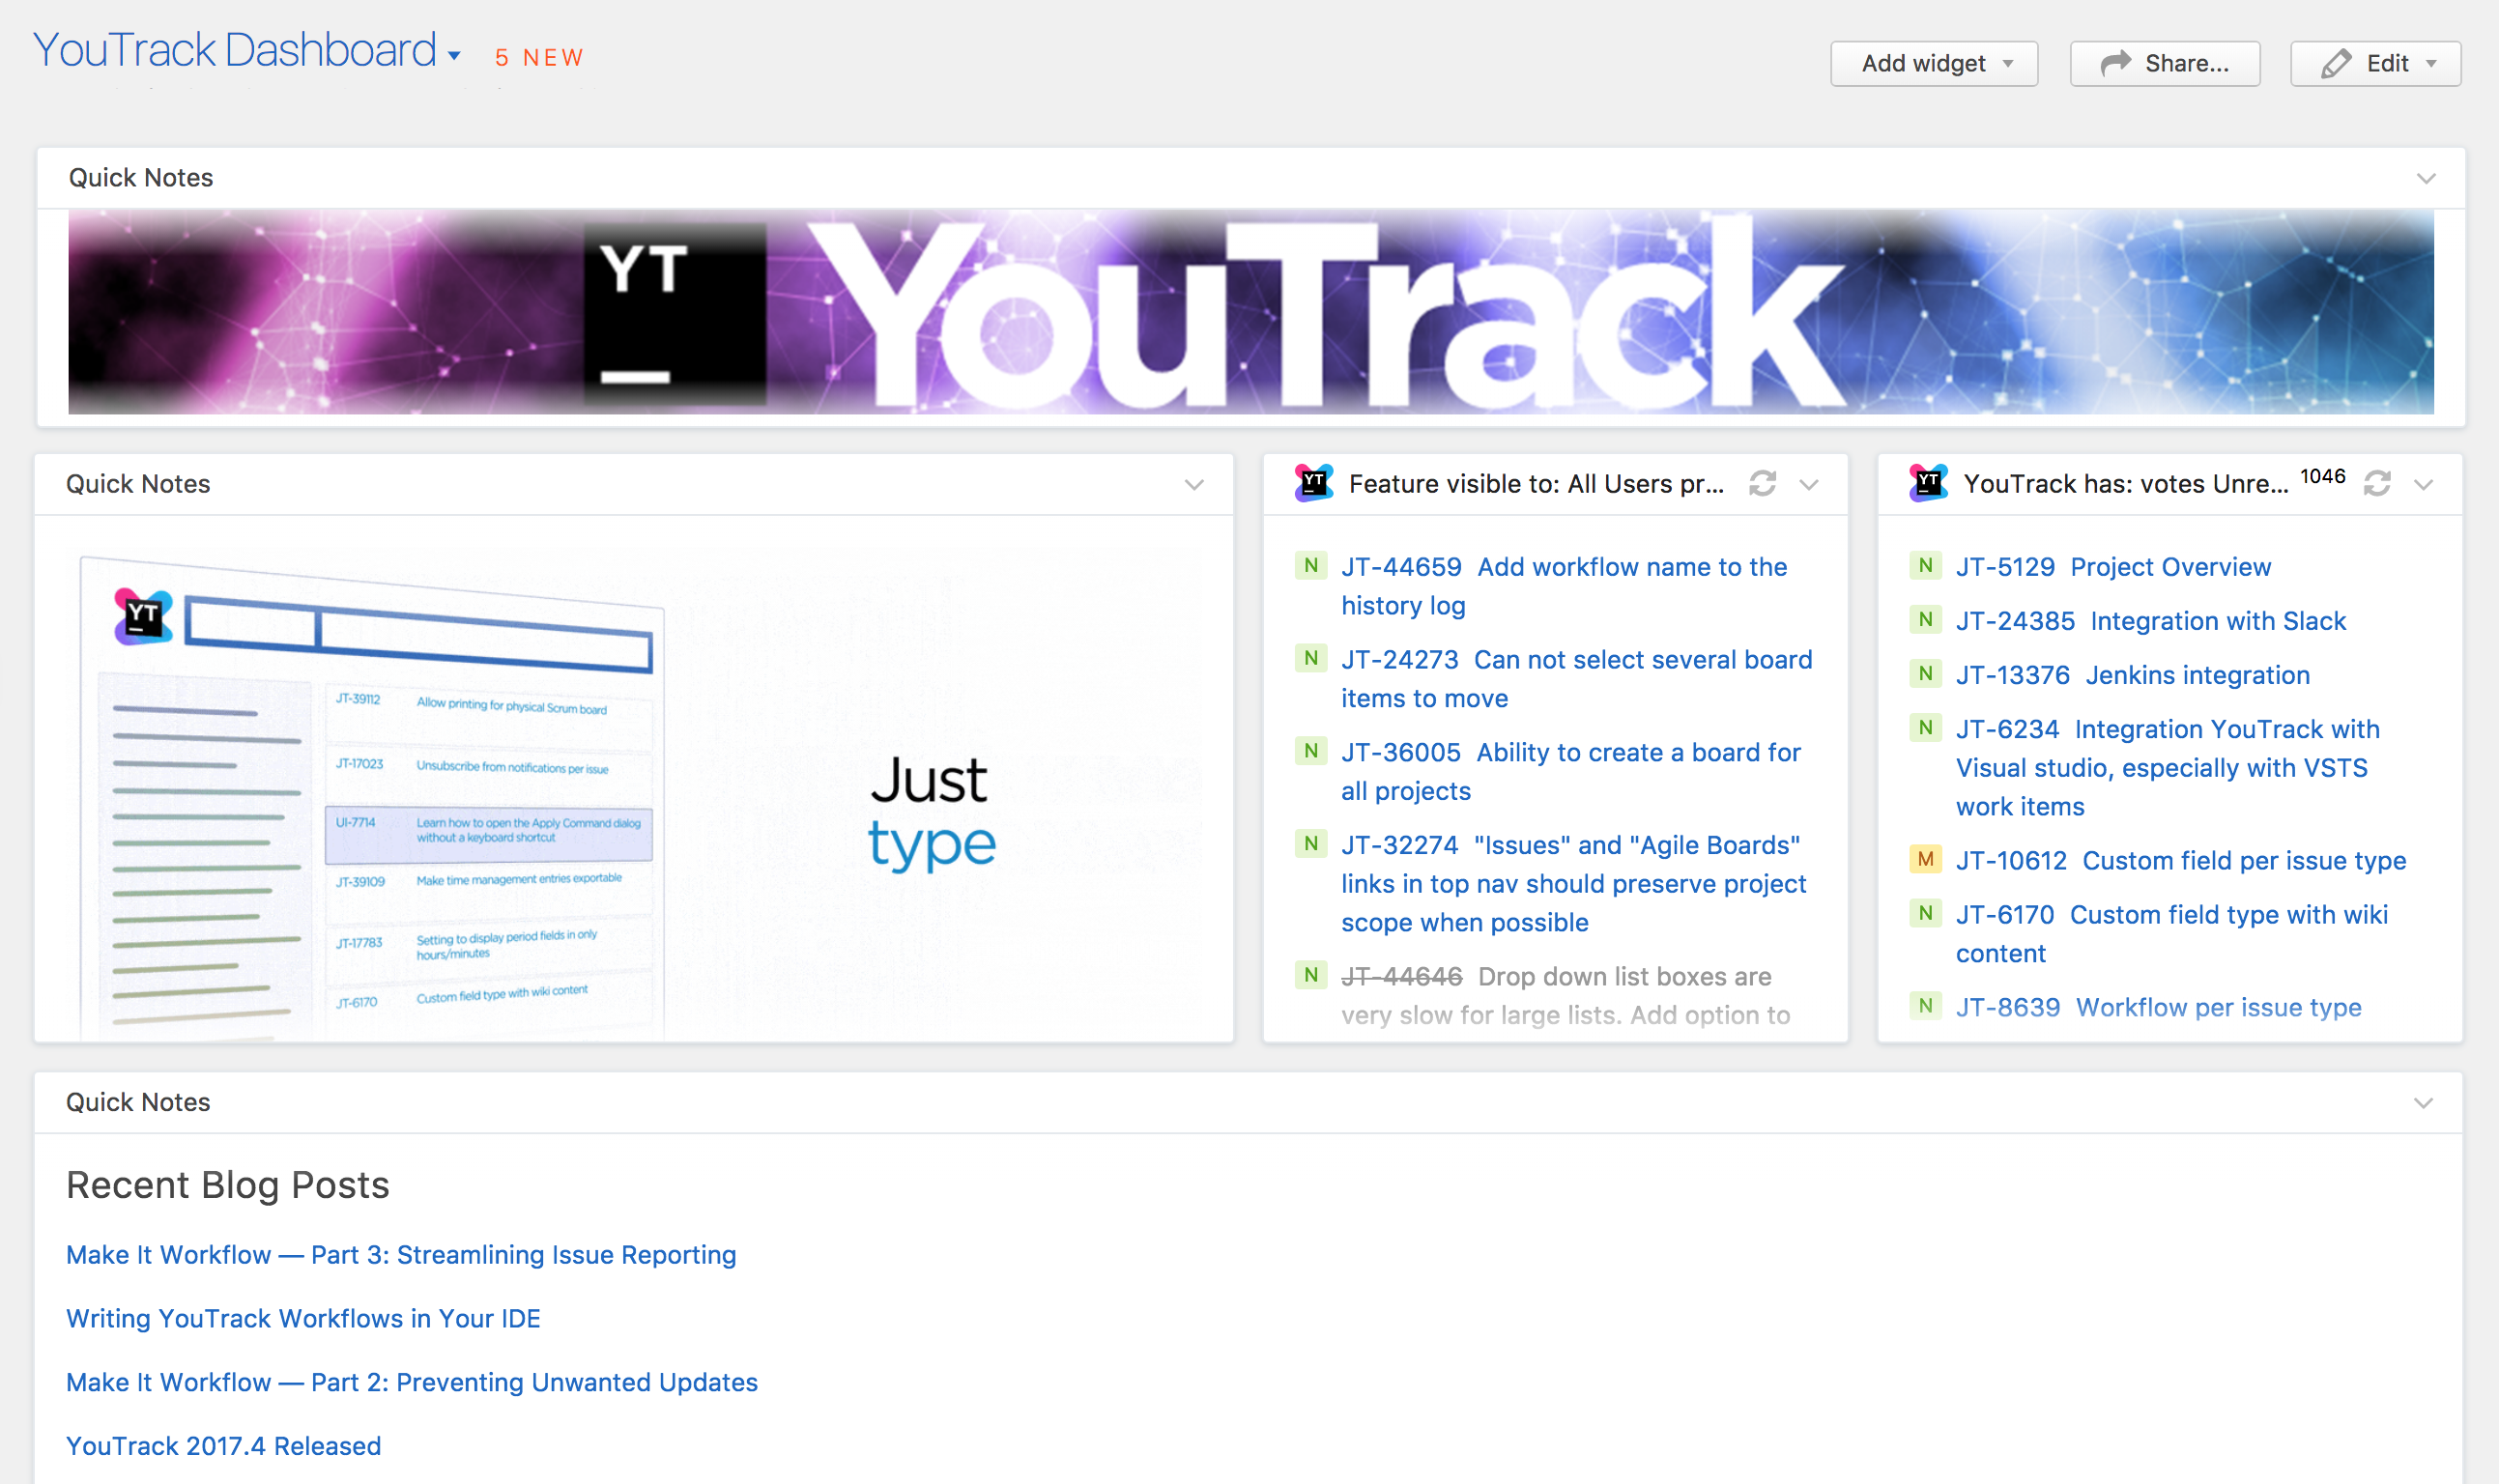 YouTrack Demo -  Live Dashboard